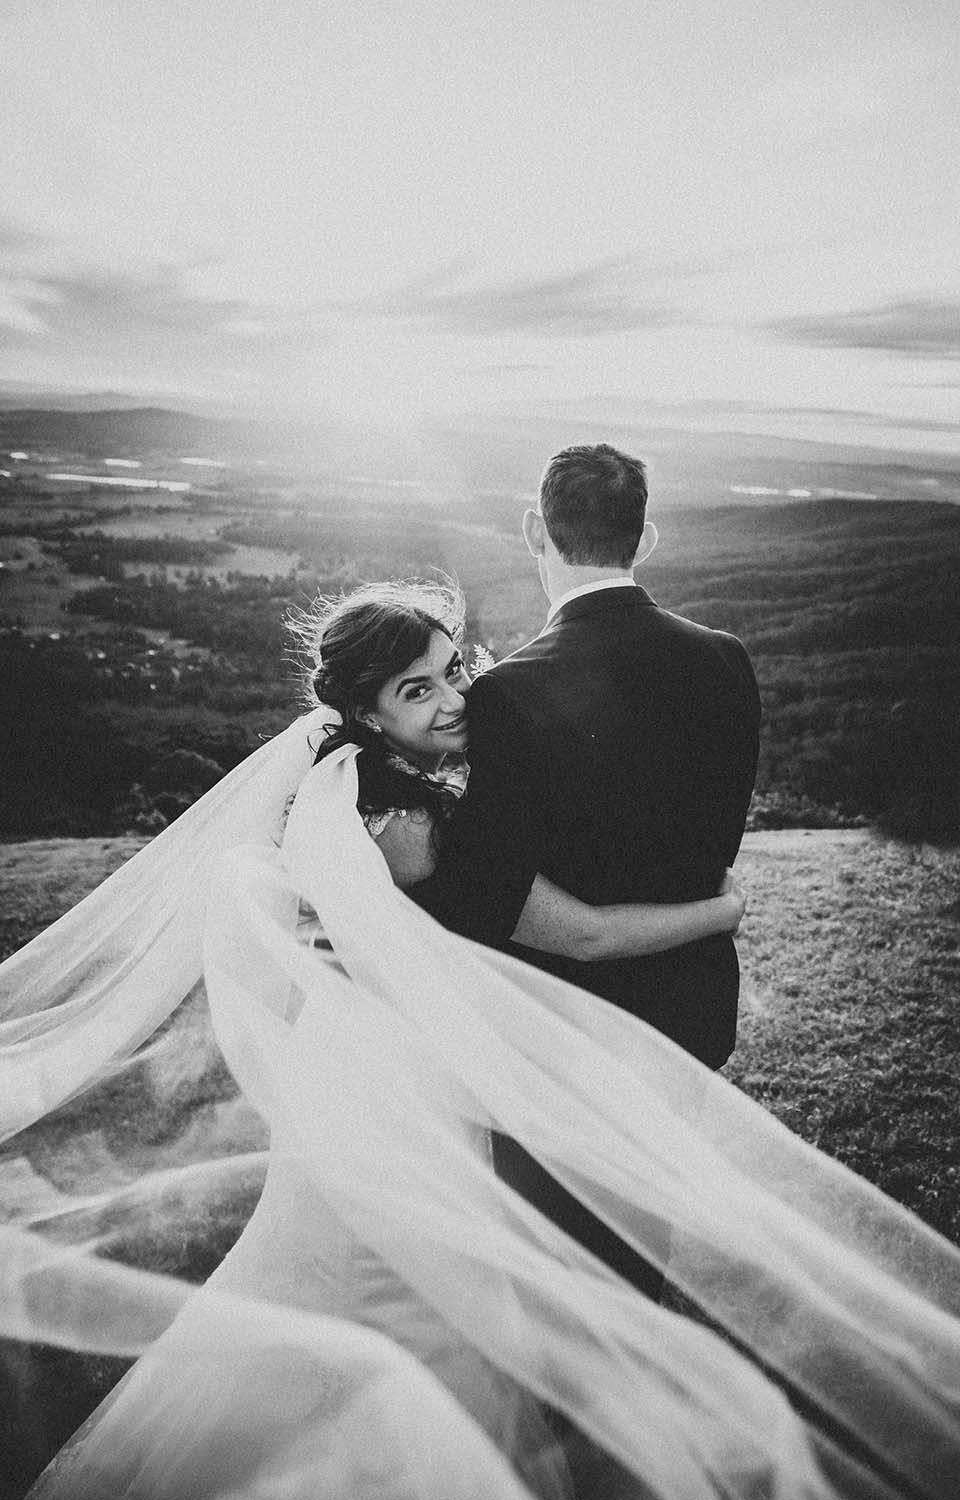 Wedding Photography Flowing Veil with couple embracing black and white